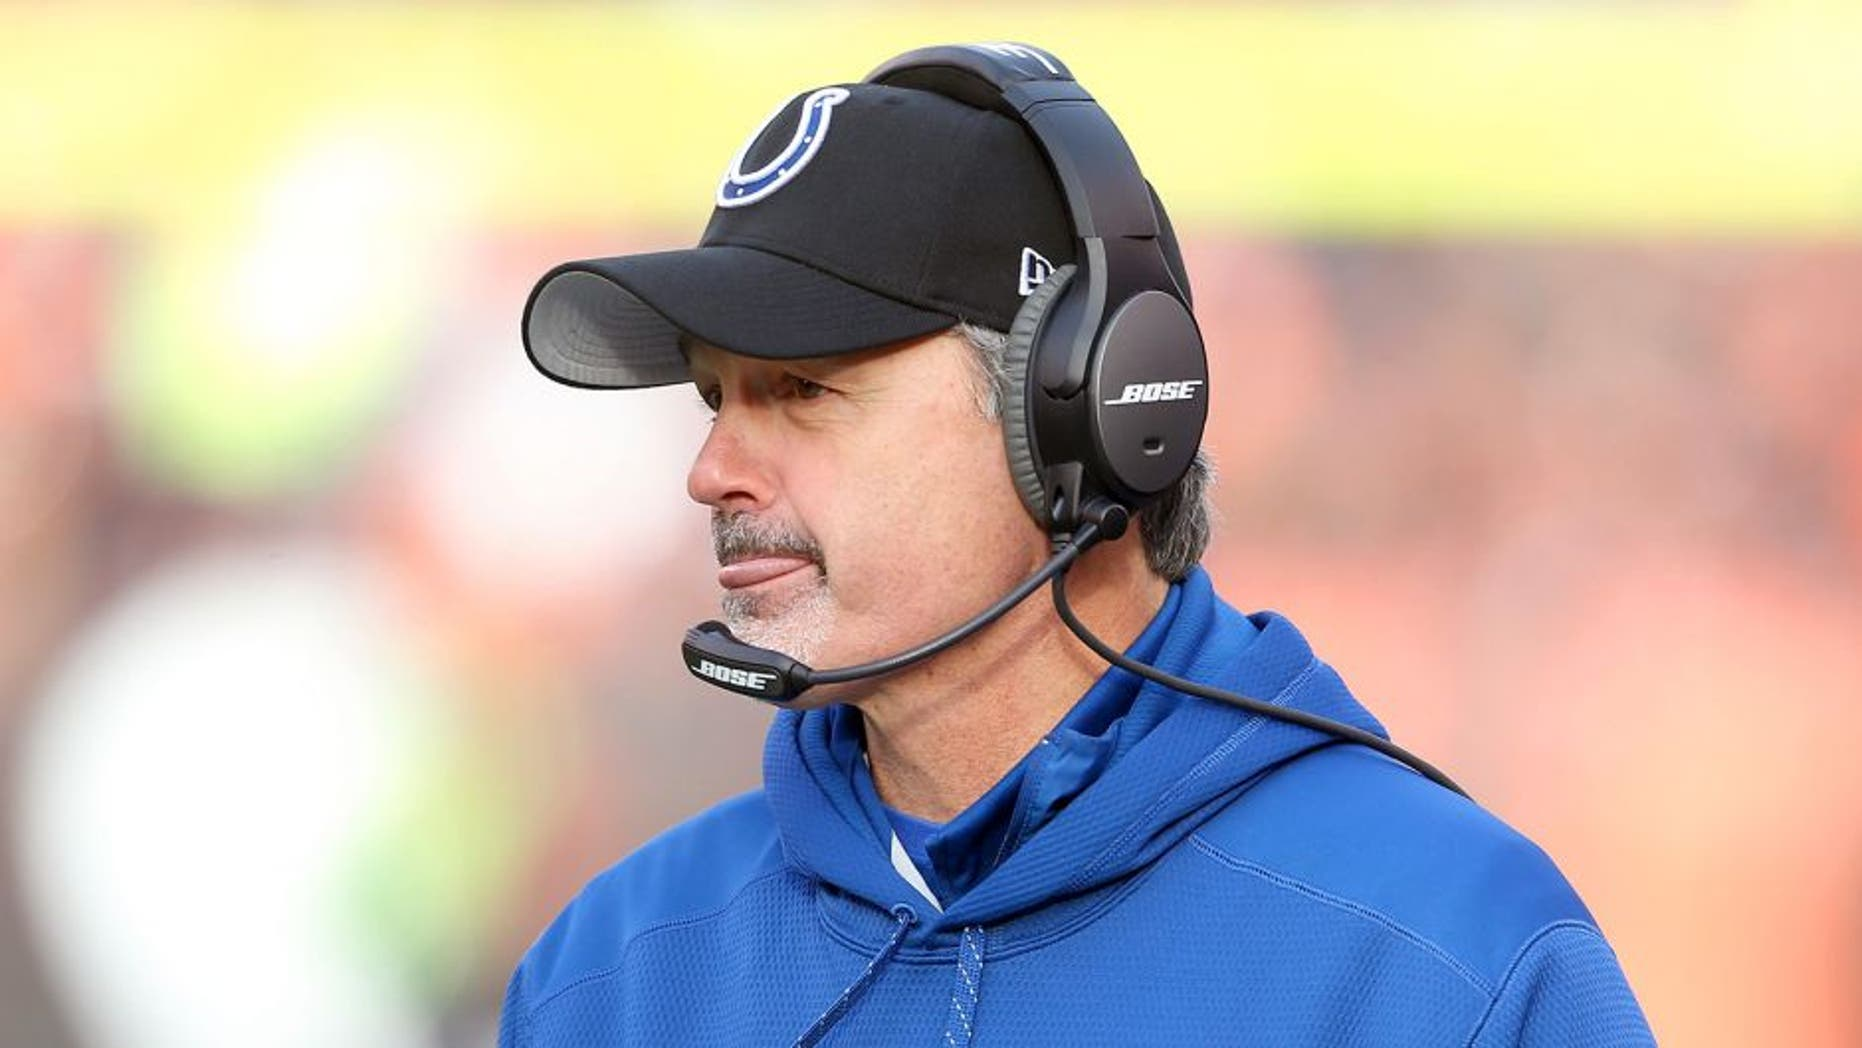 Dec 7, 2014; Cleveland, OH, USA; Indianapolis Colts head coach Chuck Pagano against the Cleveland Browns at FirstEnergy Stadium. The Cots won 25-24. Mandatory Credit: Ron Schwane-USA TODAY Sports